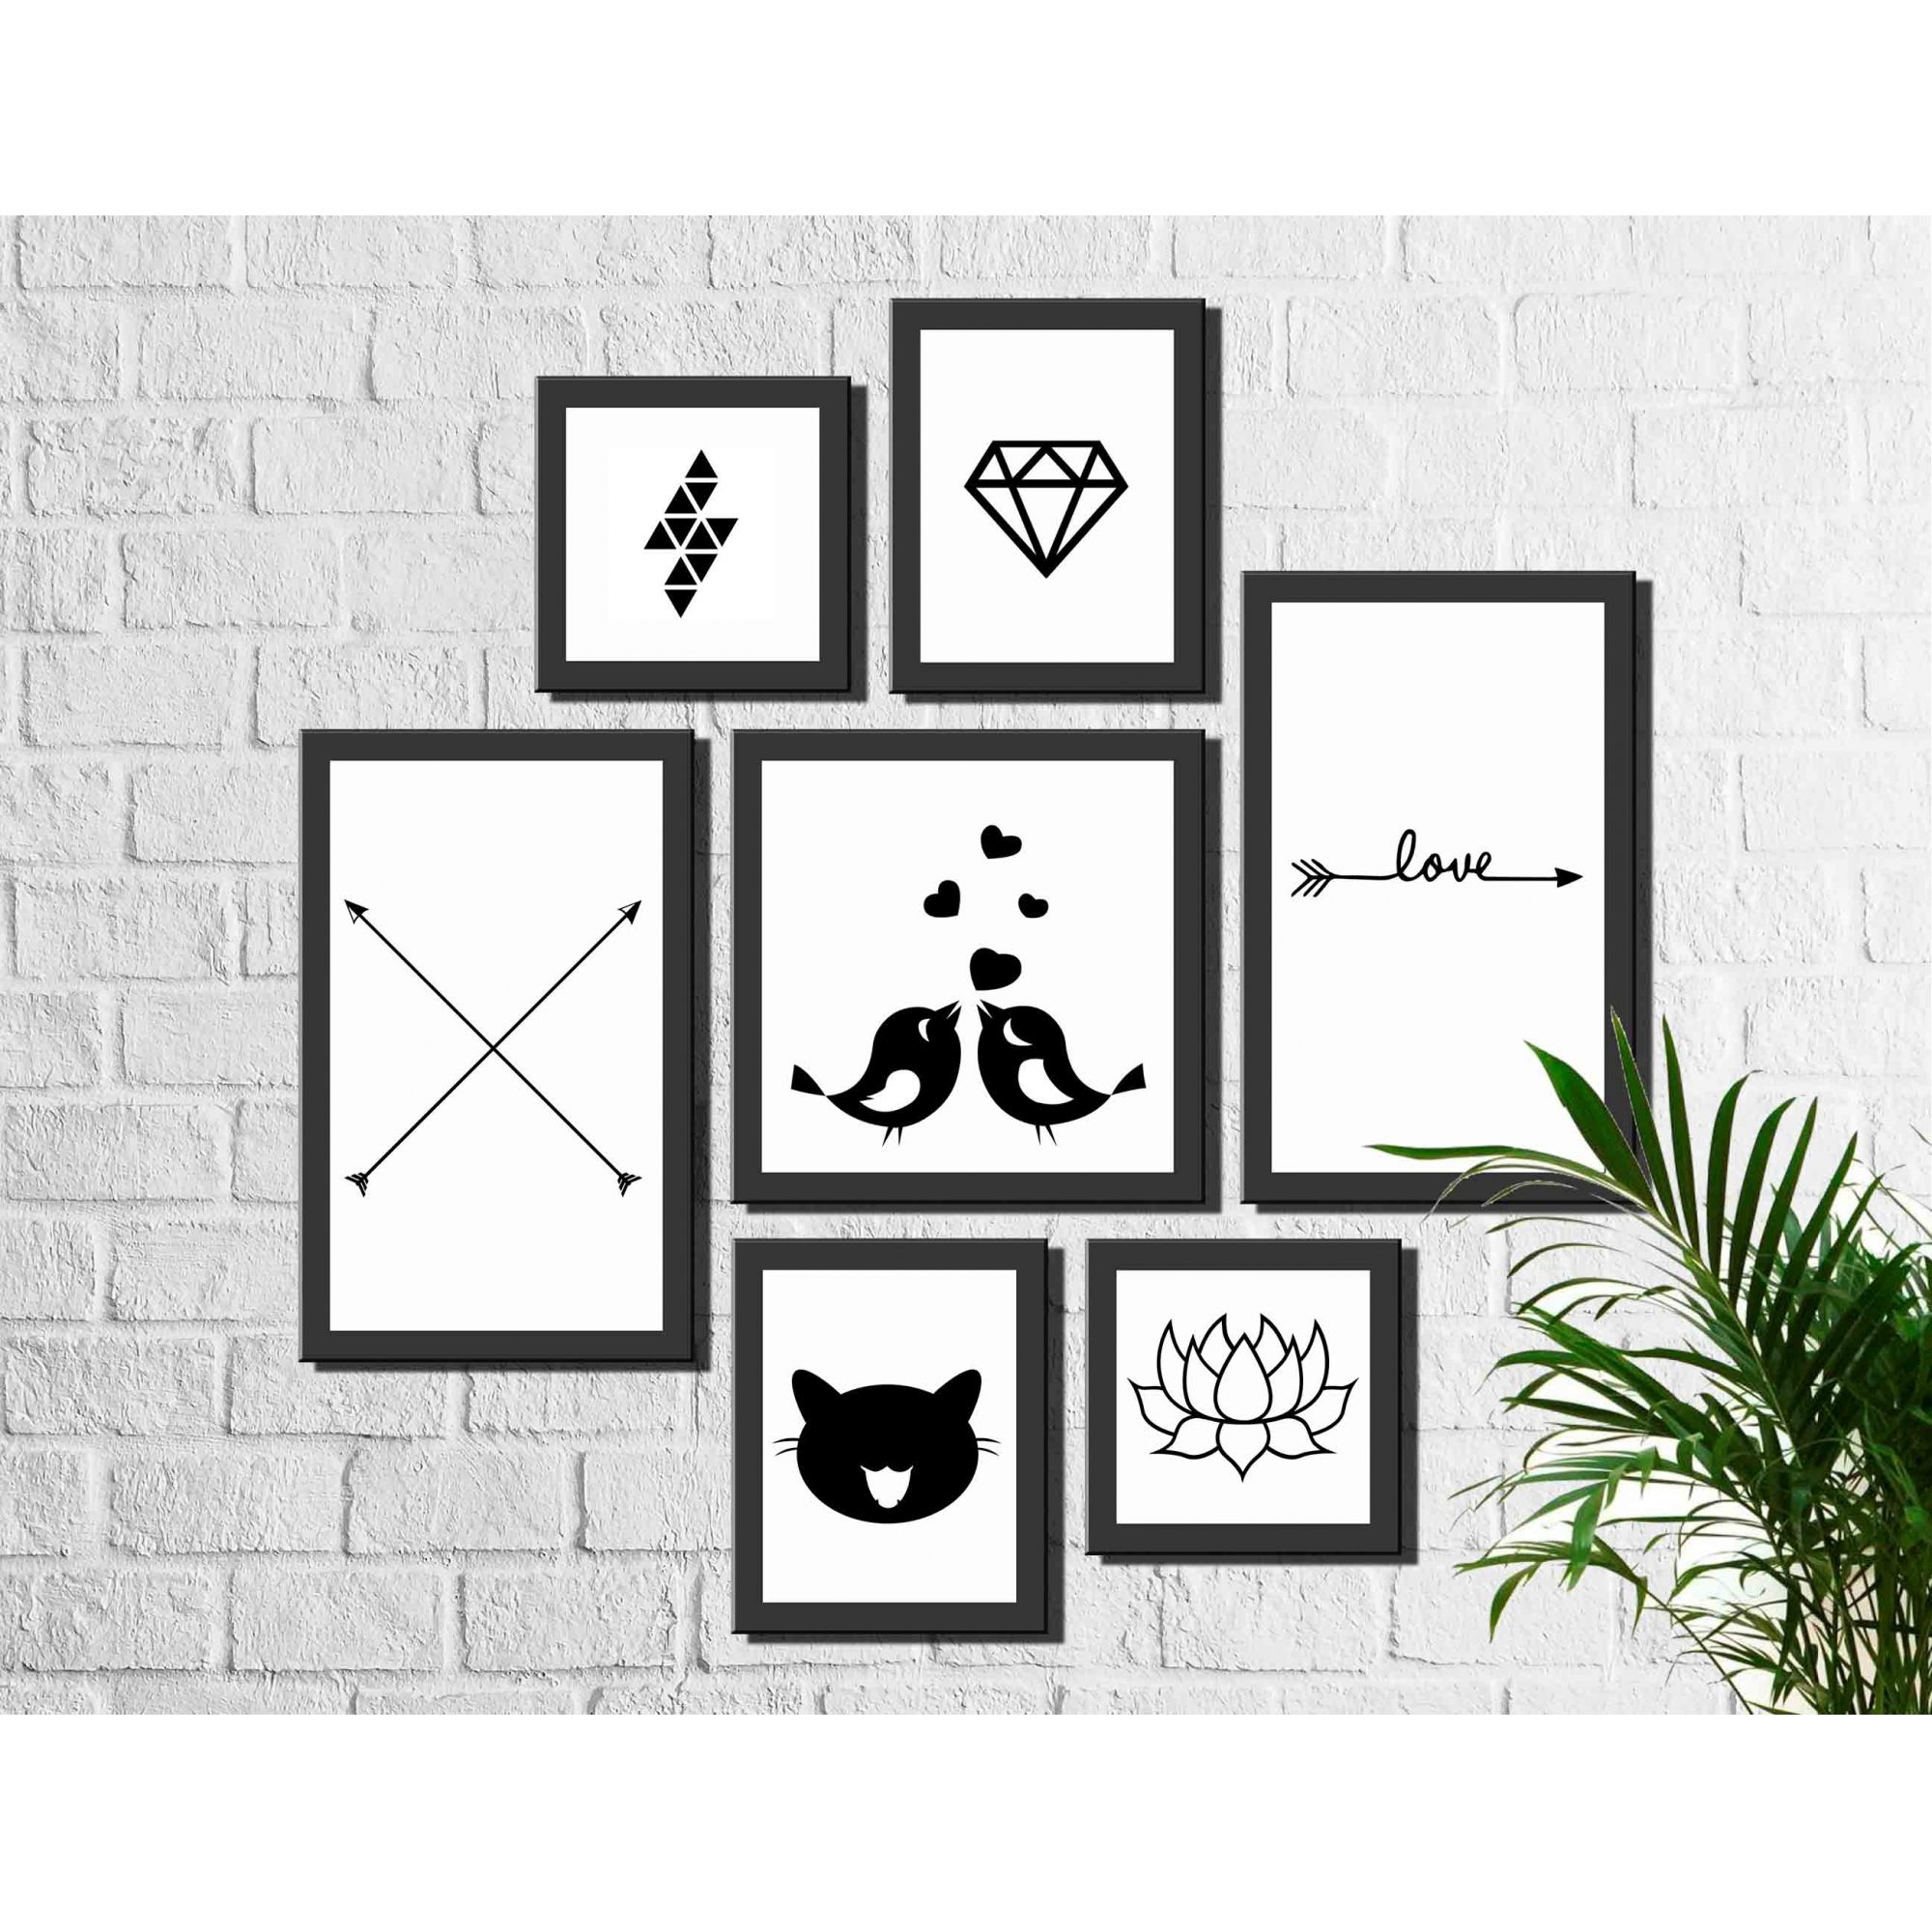 Kit 7 Quadros Decorativos Minimalista Escandinavo